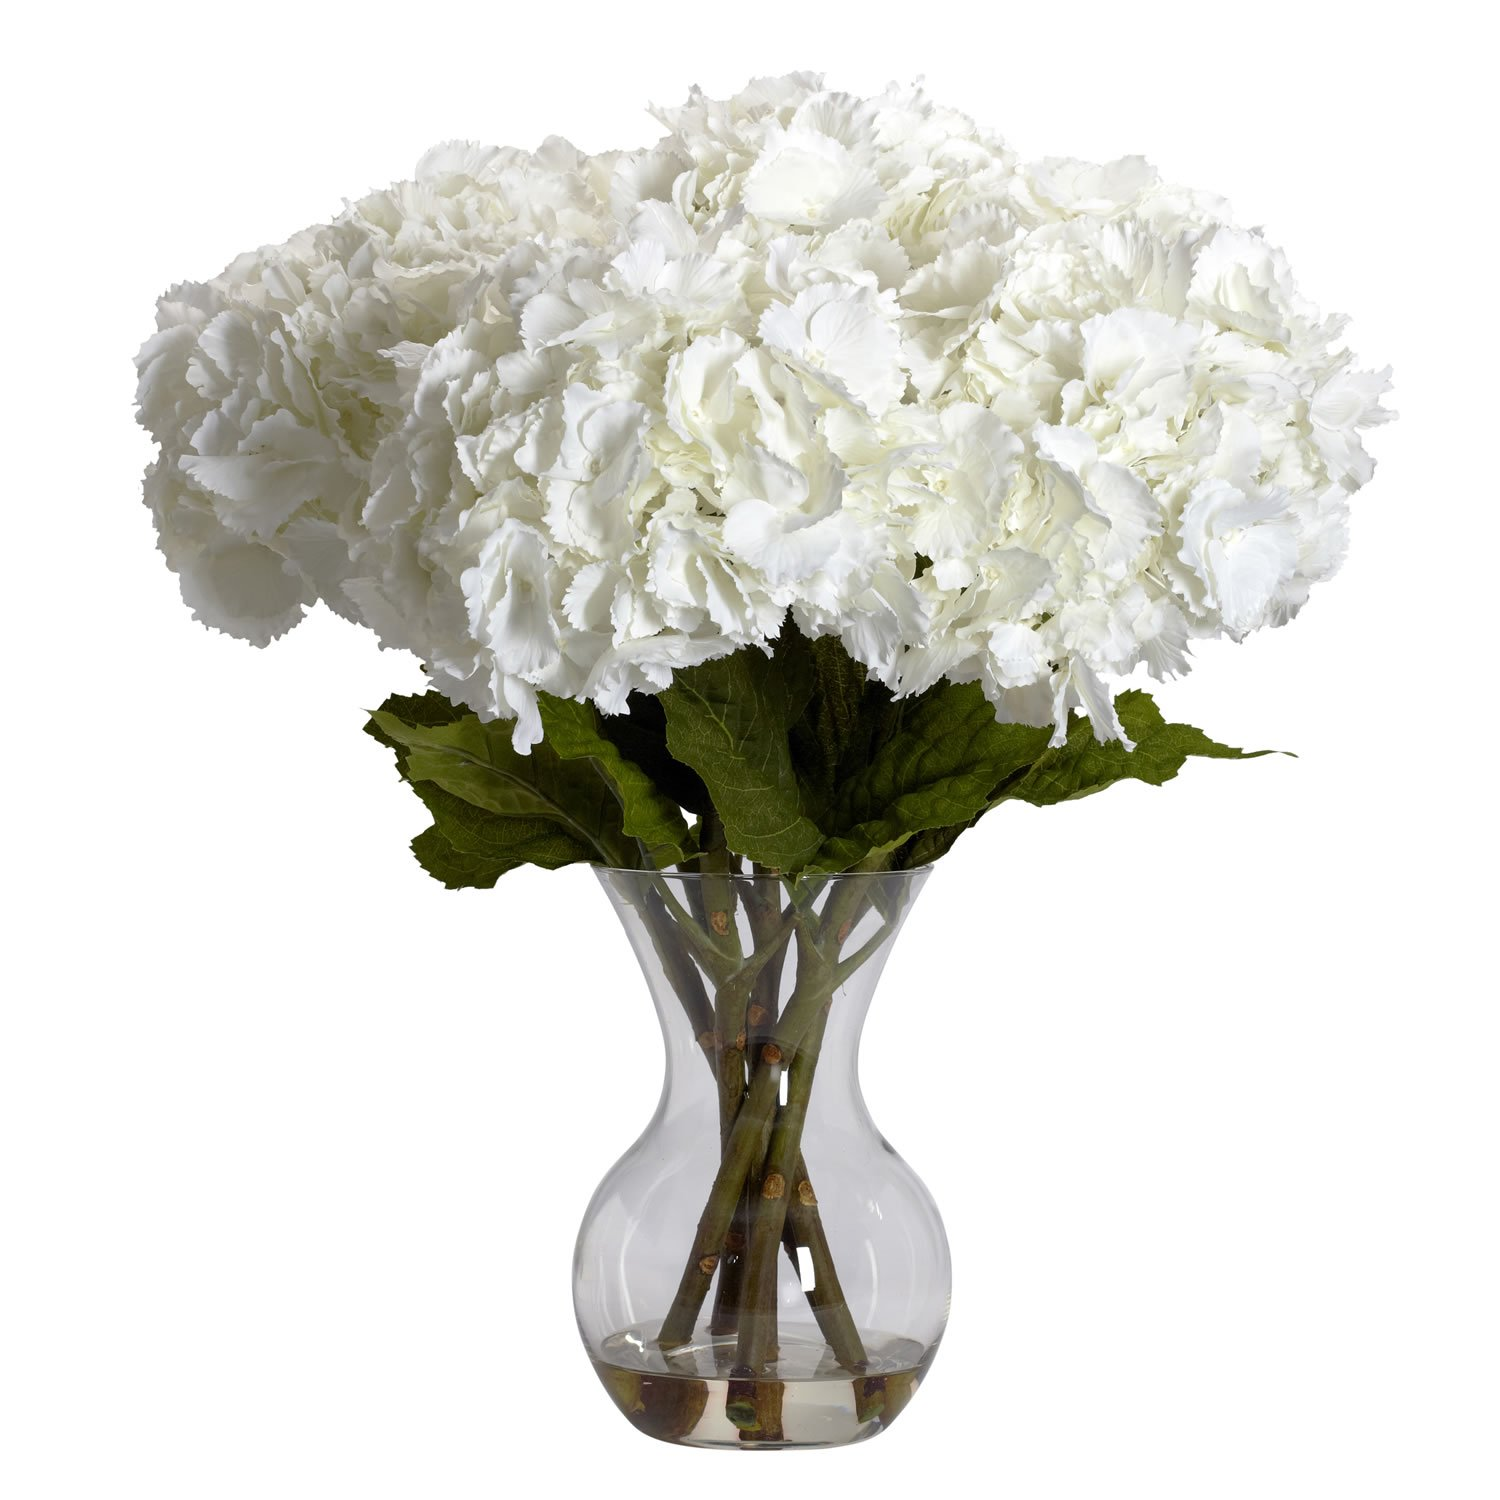 Amazon nearly natural 1260 large hydrangea with vase silk amazon nearly natural 1260 large hydrangea with vase silk flower arrangement white home kitchen izmirmasajfo Images